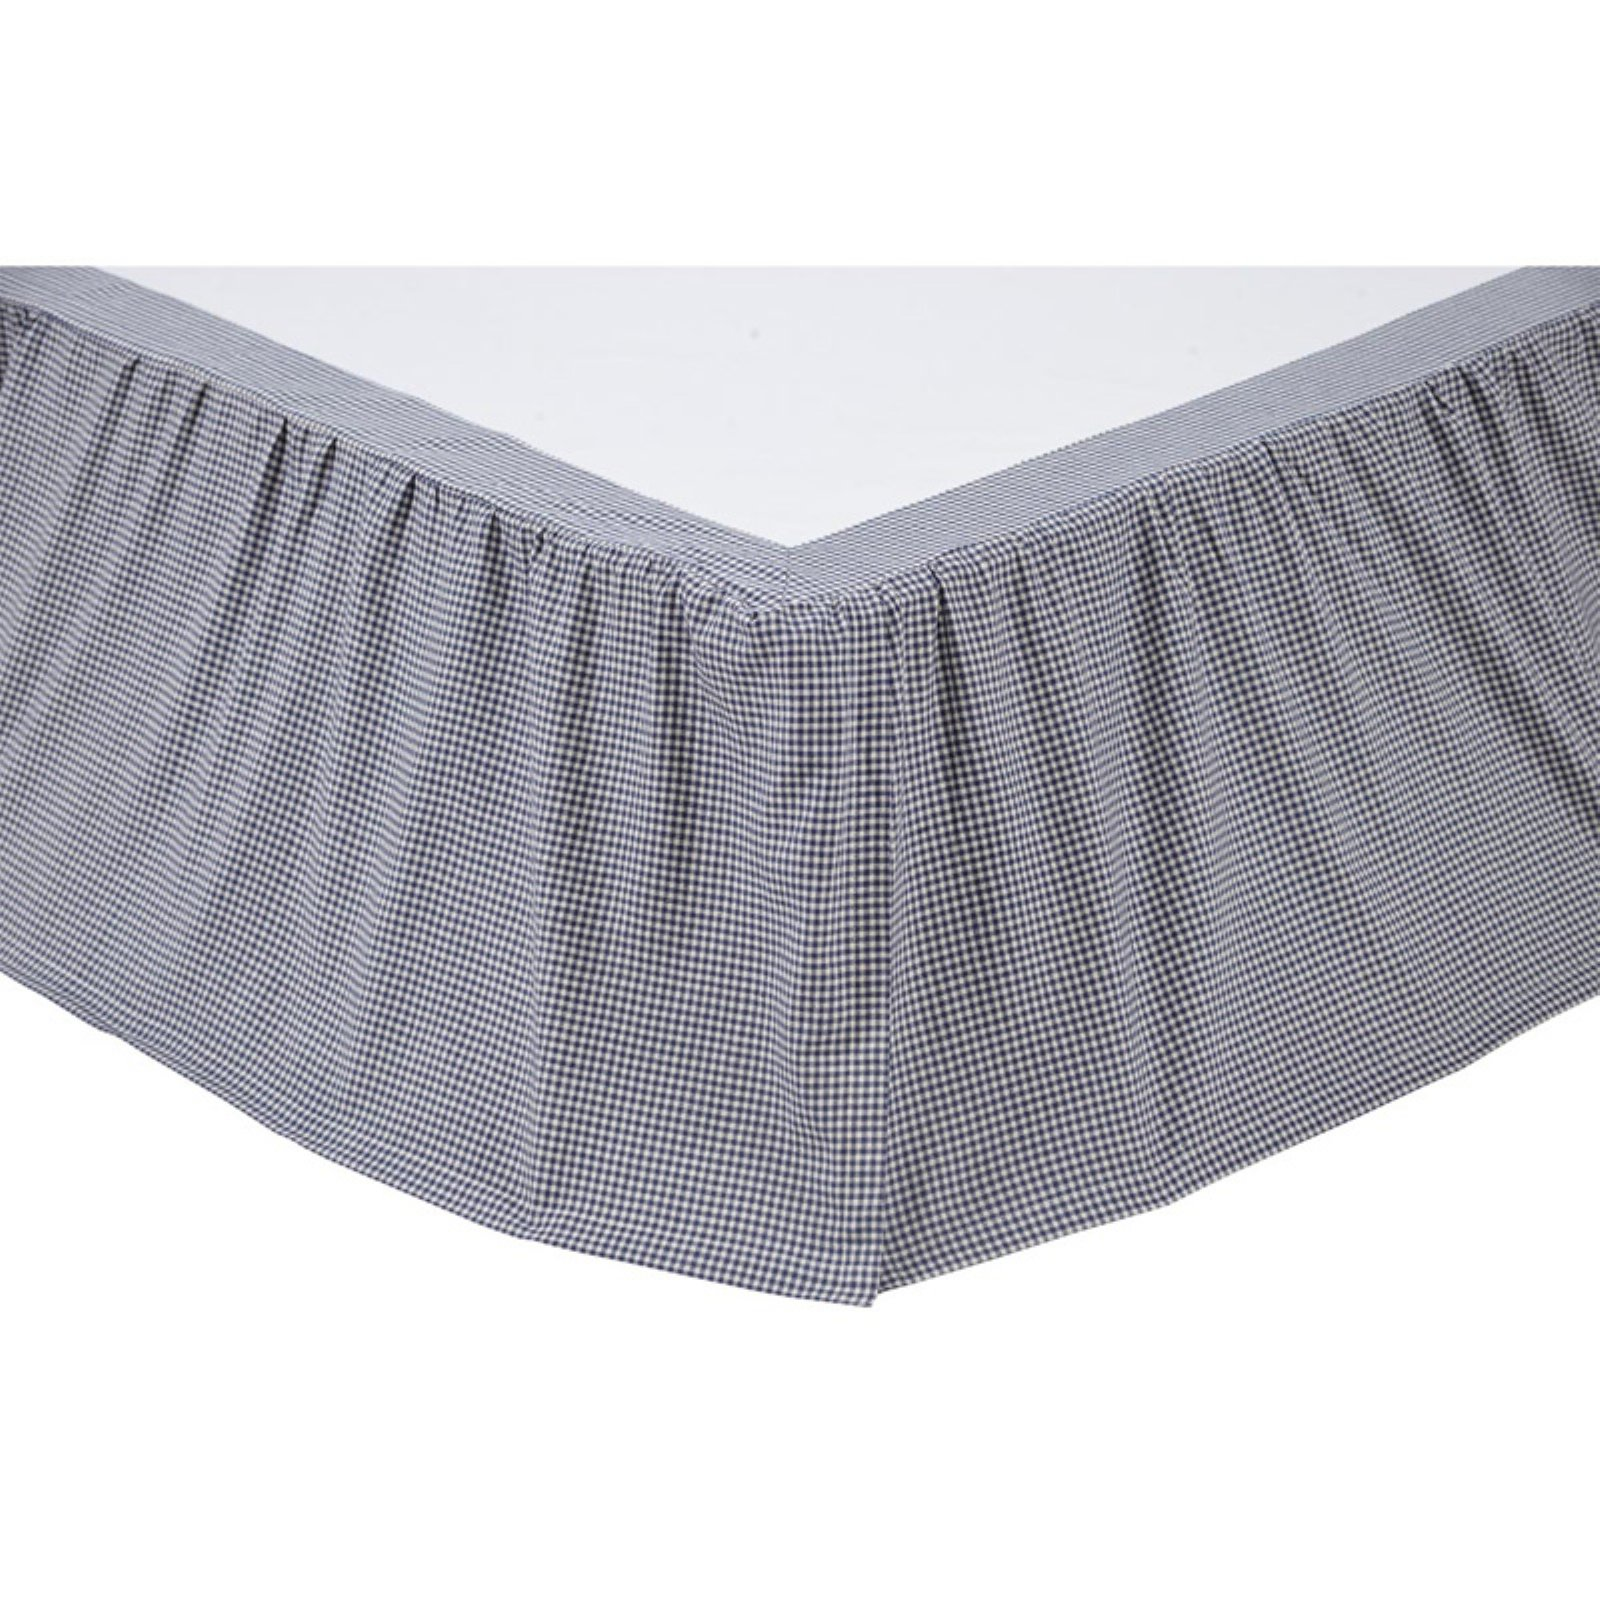 Maddox Bed Skirt by VHC Brands